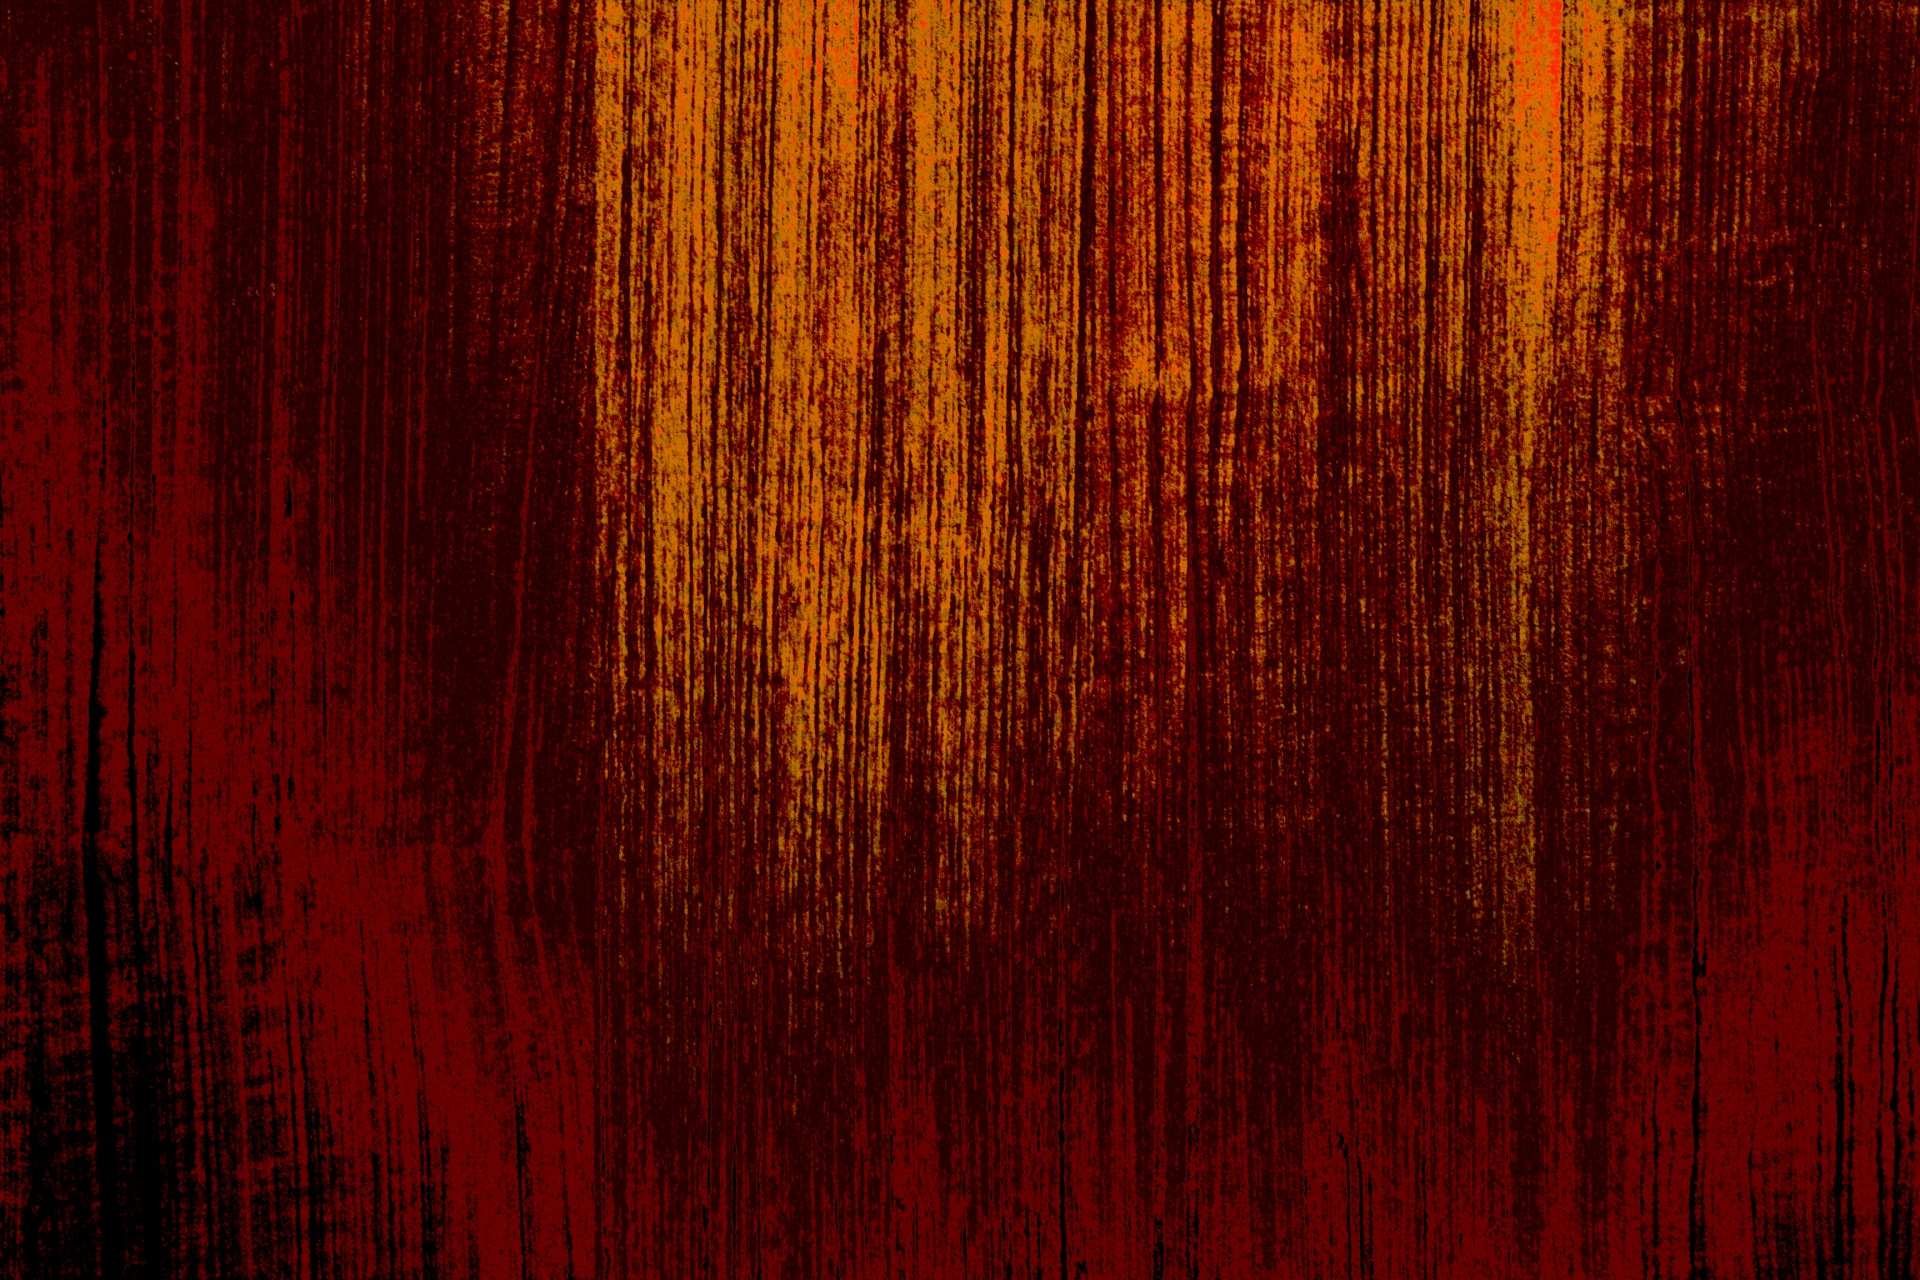 Wood Background 04 Free Stock Photo - Public Domain Pictures